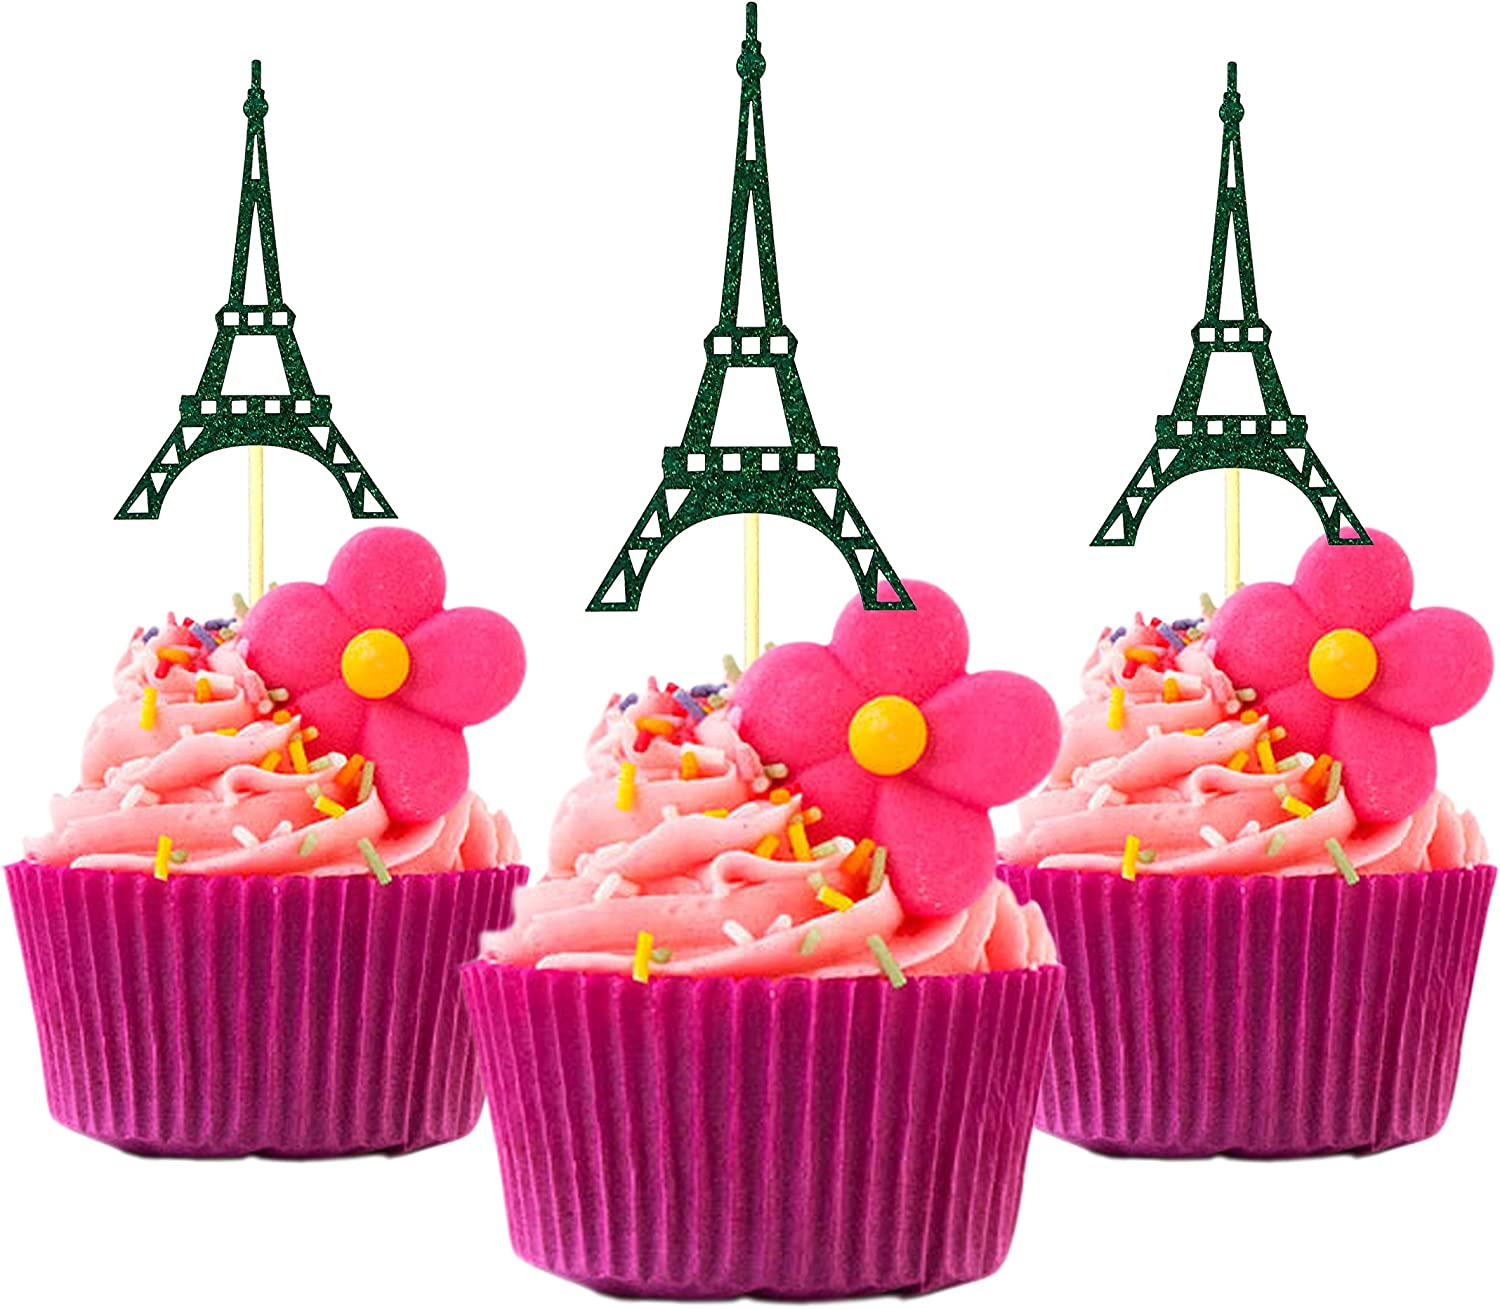 Amazon Com Cup Cake Topper Eiffel Tower Paris Birthday Ideas Glitter Card Stock Color Green 12 Pieces Per Pack Grocery Gourmet Food